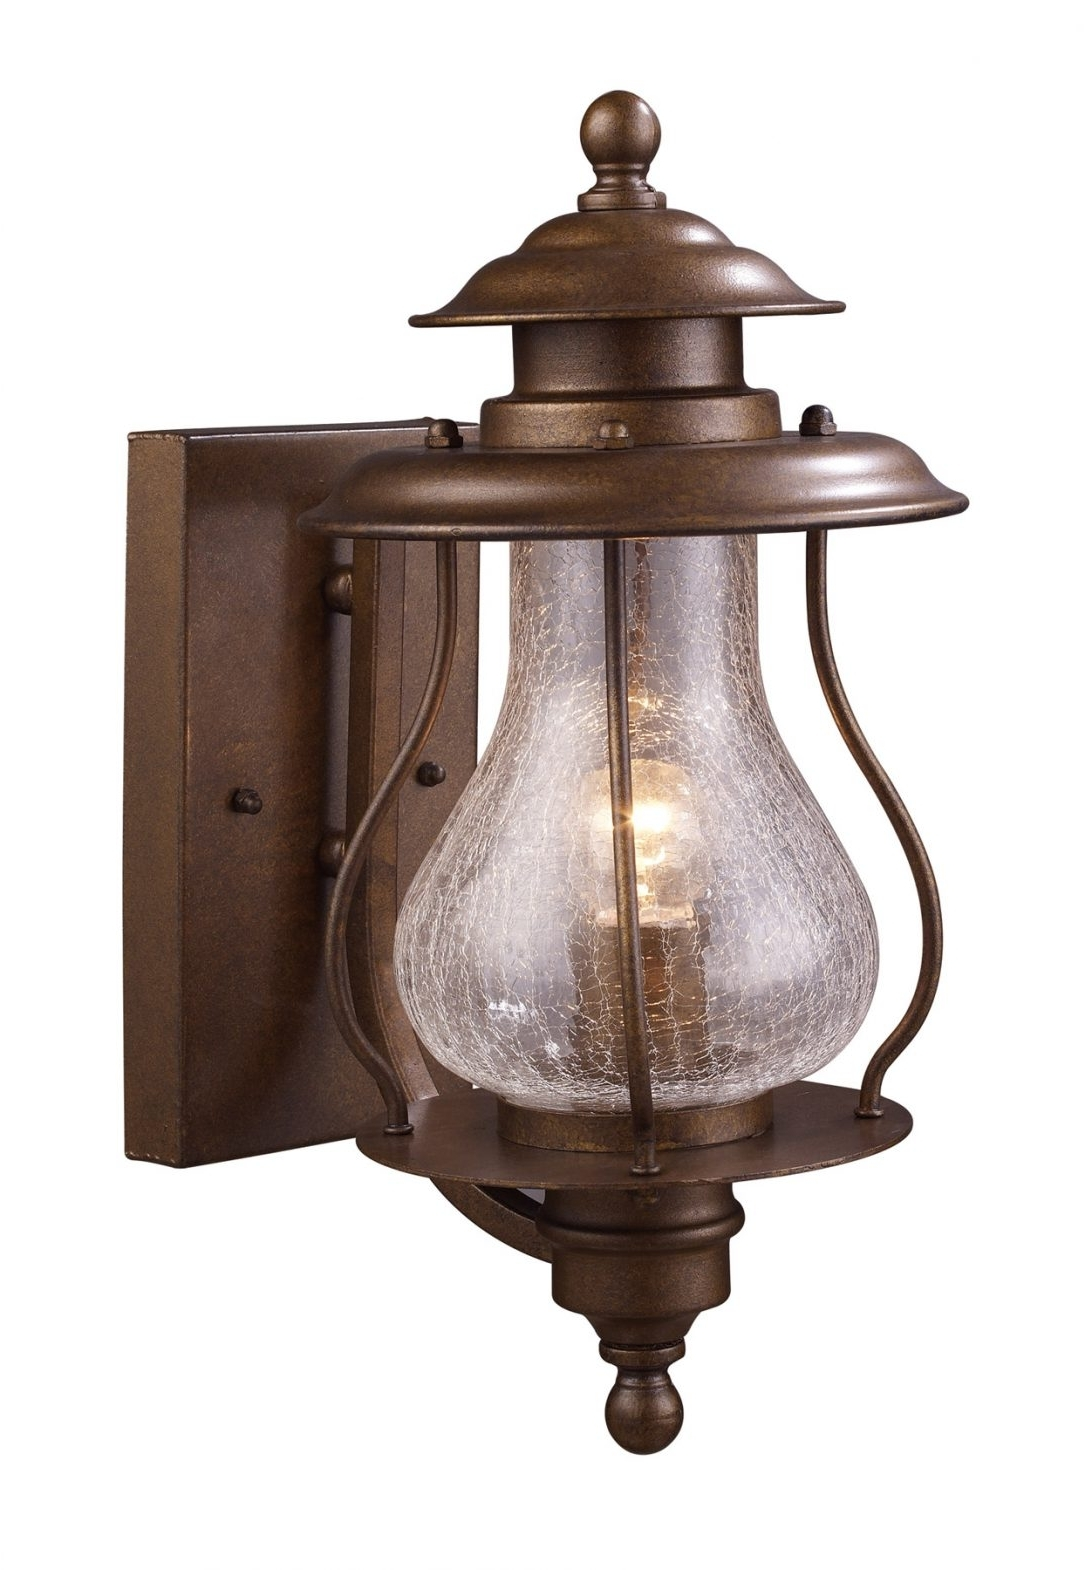 2019 Wall Mounted Outdoor Lanterns With Regard To Wall Mount Porch Lights Patio Exterior Solar Outdoor Lanterns (View 8 of 20)